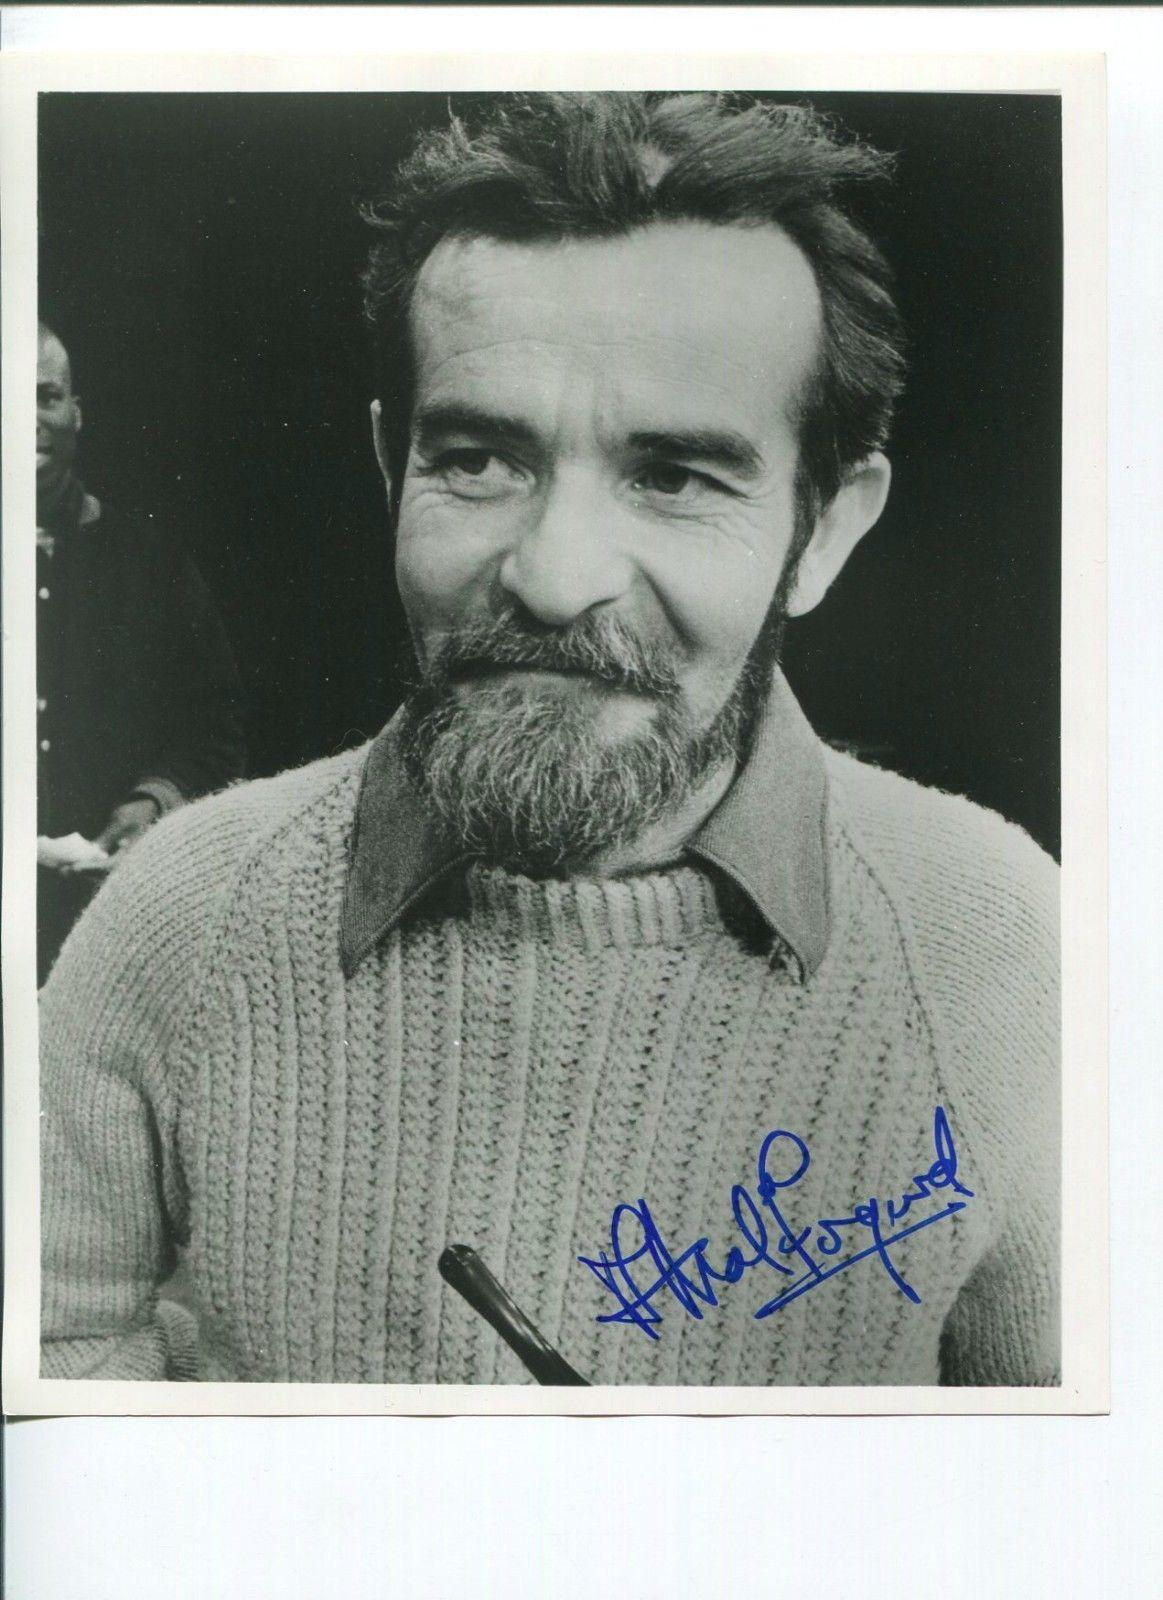 athol fugard biography Master haroldand the boys is a play by athol fugardset in 1950, it was first produced at the yale repertory theatre in march 1982 and made its premiere on broadway on 4 may at the lyceum theatre, where it ran for 344 performances.